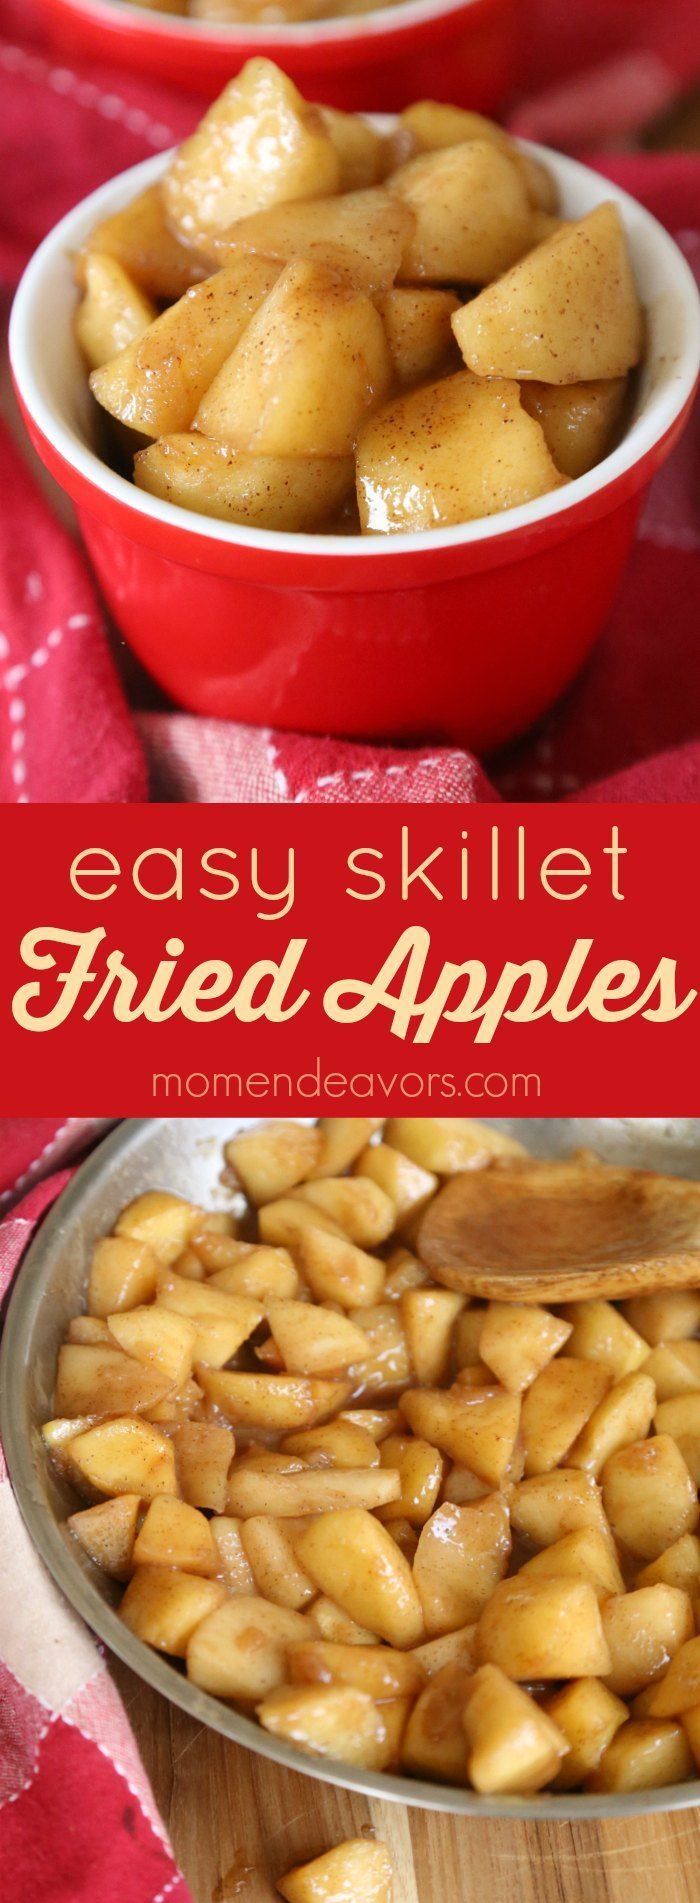 best images about on pinterest skillets shelves and